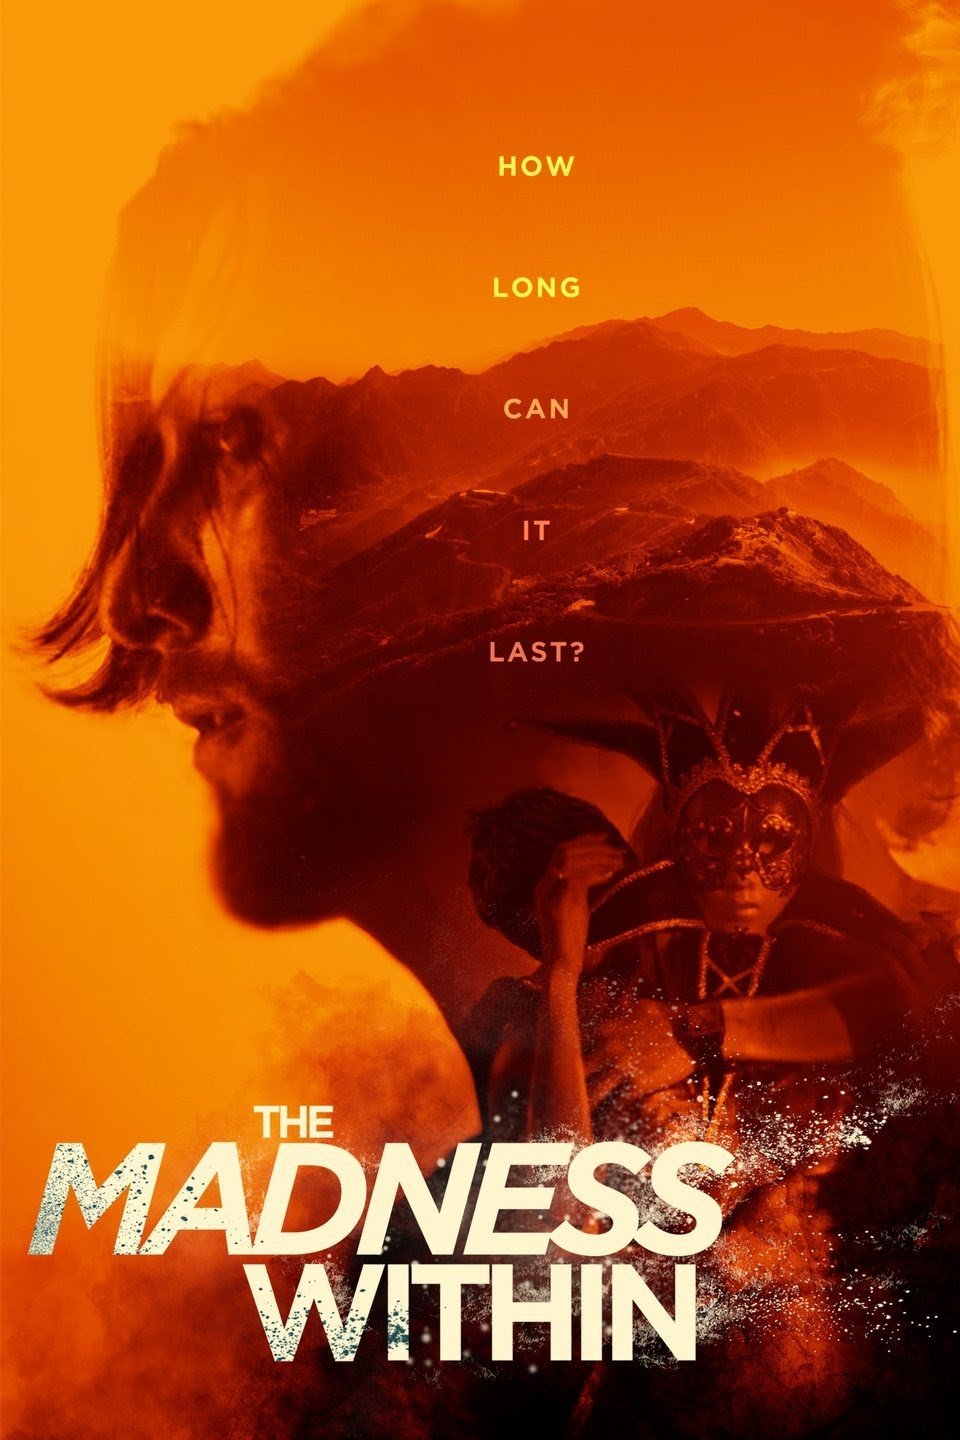 Download (18+) The Madness Within Dual Audio (Hindi UnOfficial Dubbed-English) | 480p | 720p